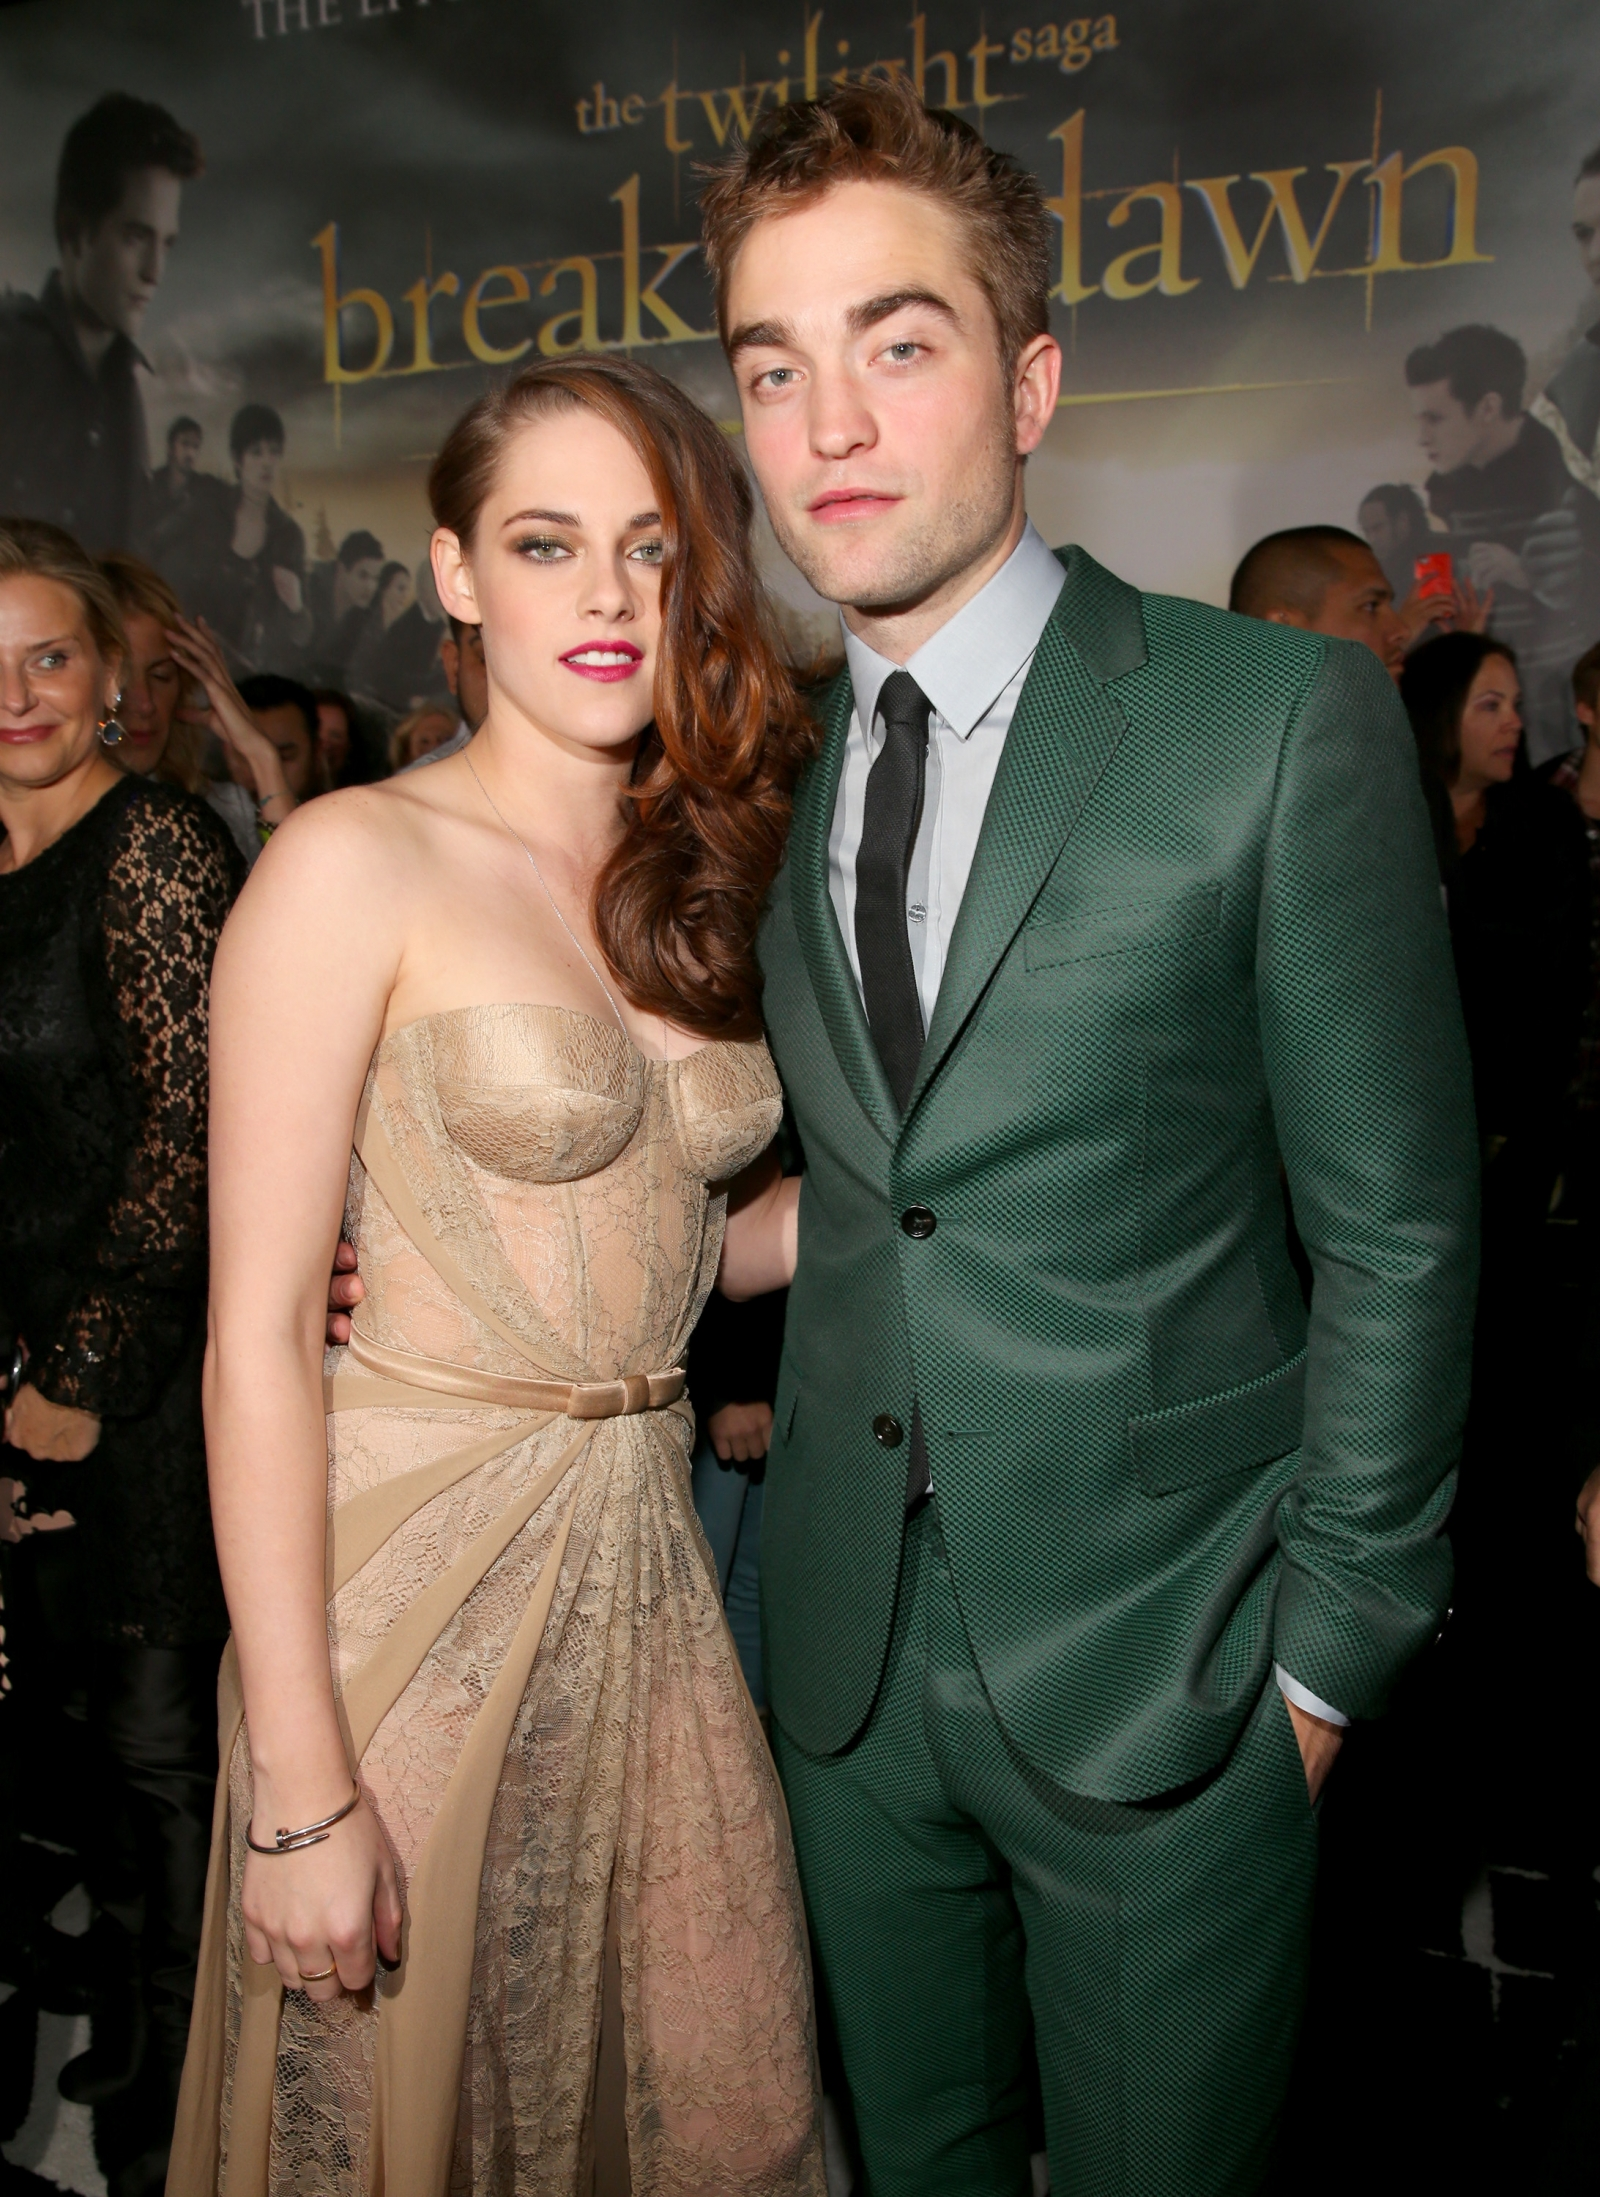 Are rob and kristen dating 2012